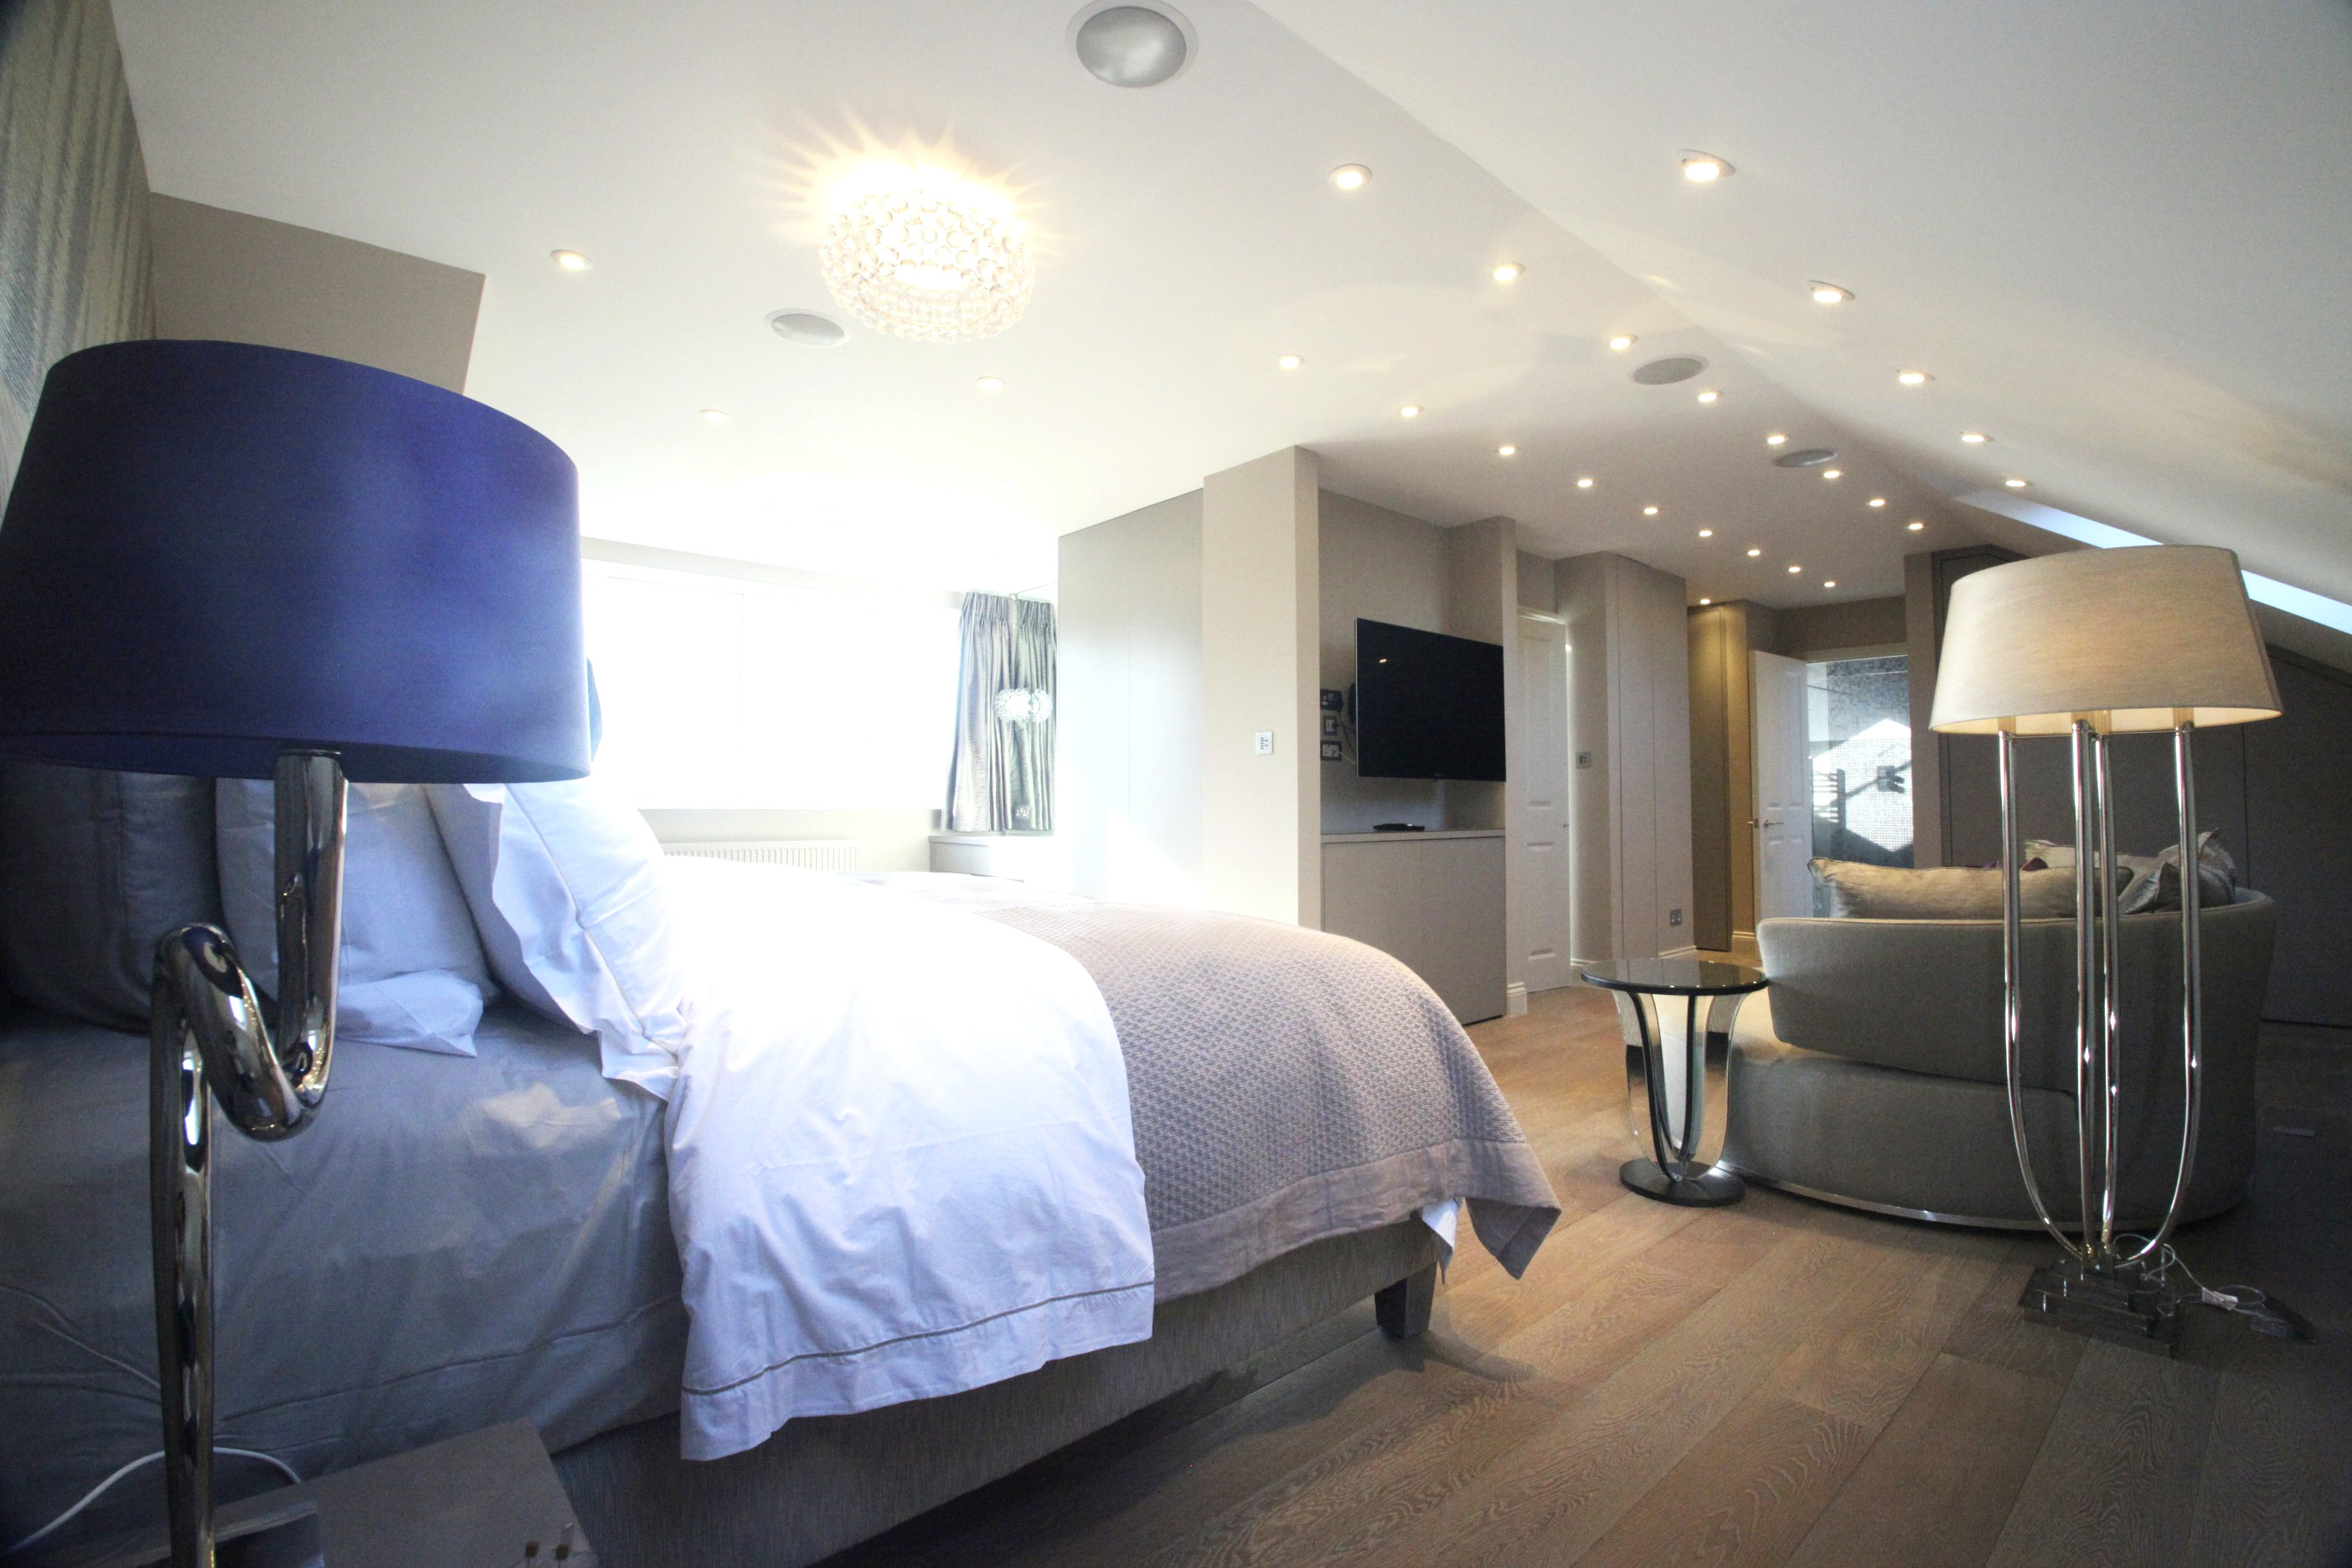 An image of a Loft Conversion. This loft has created a beautiful bedroom space